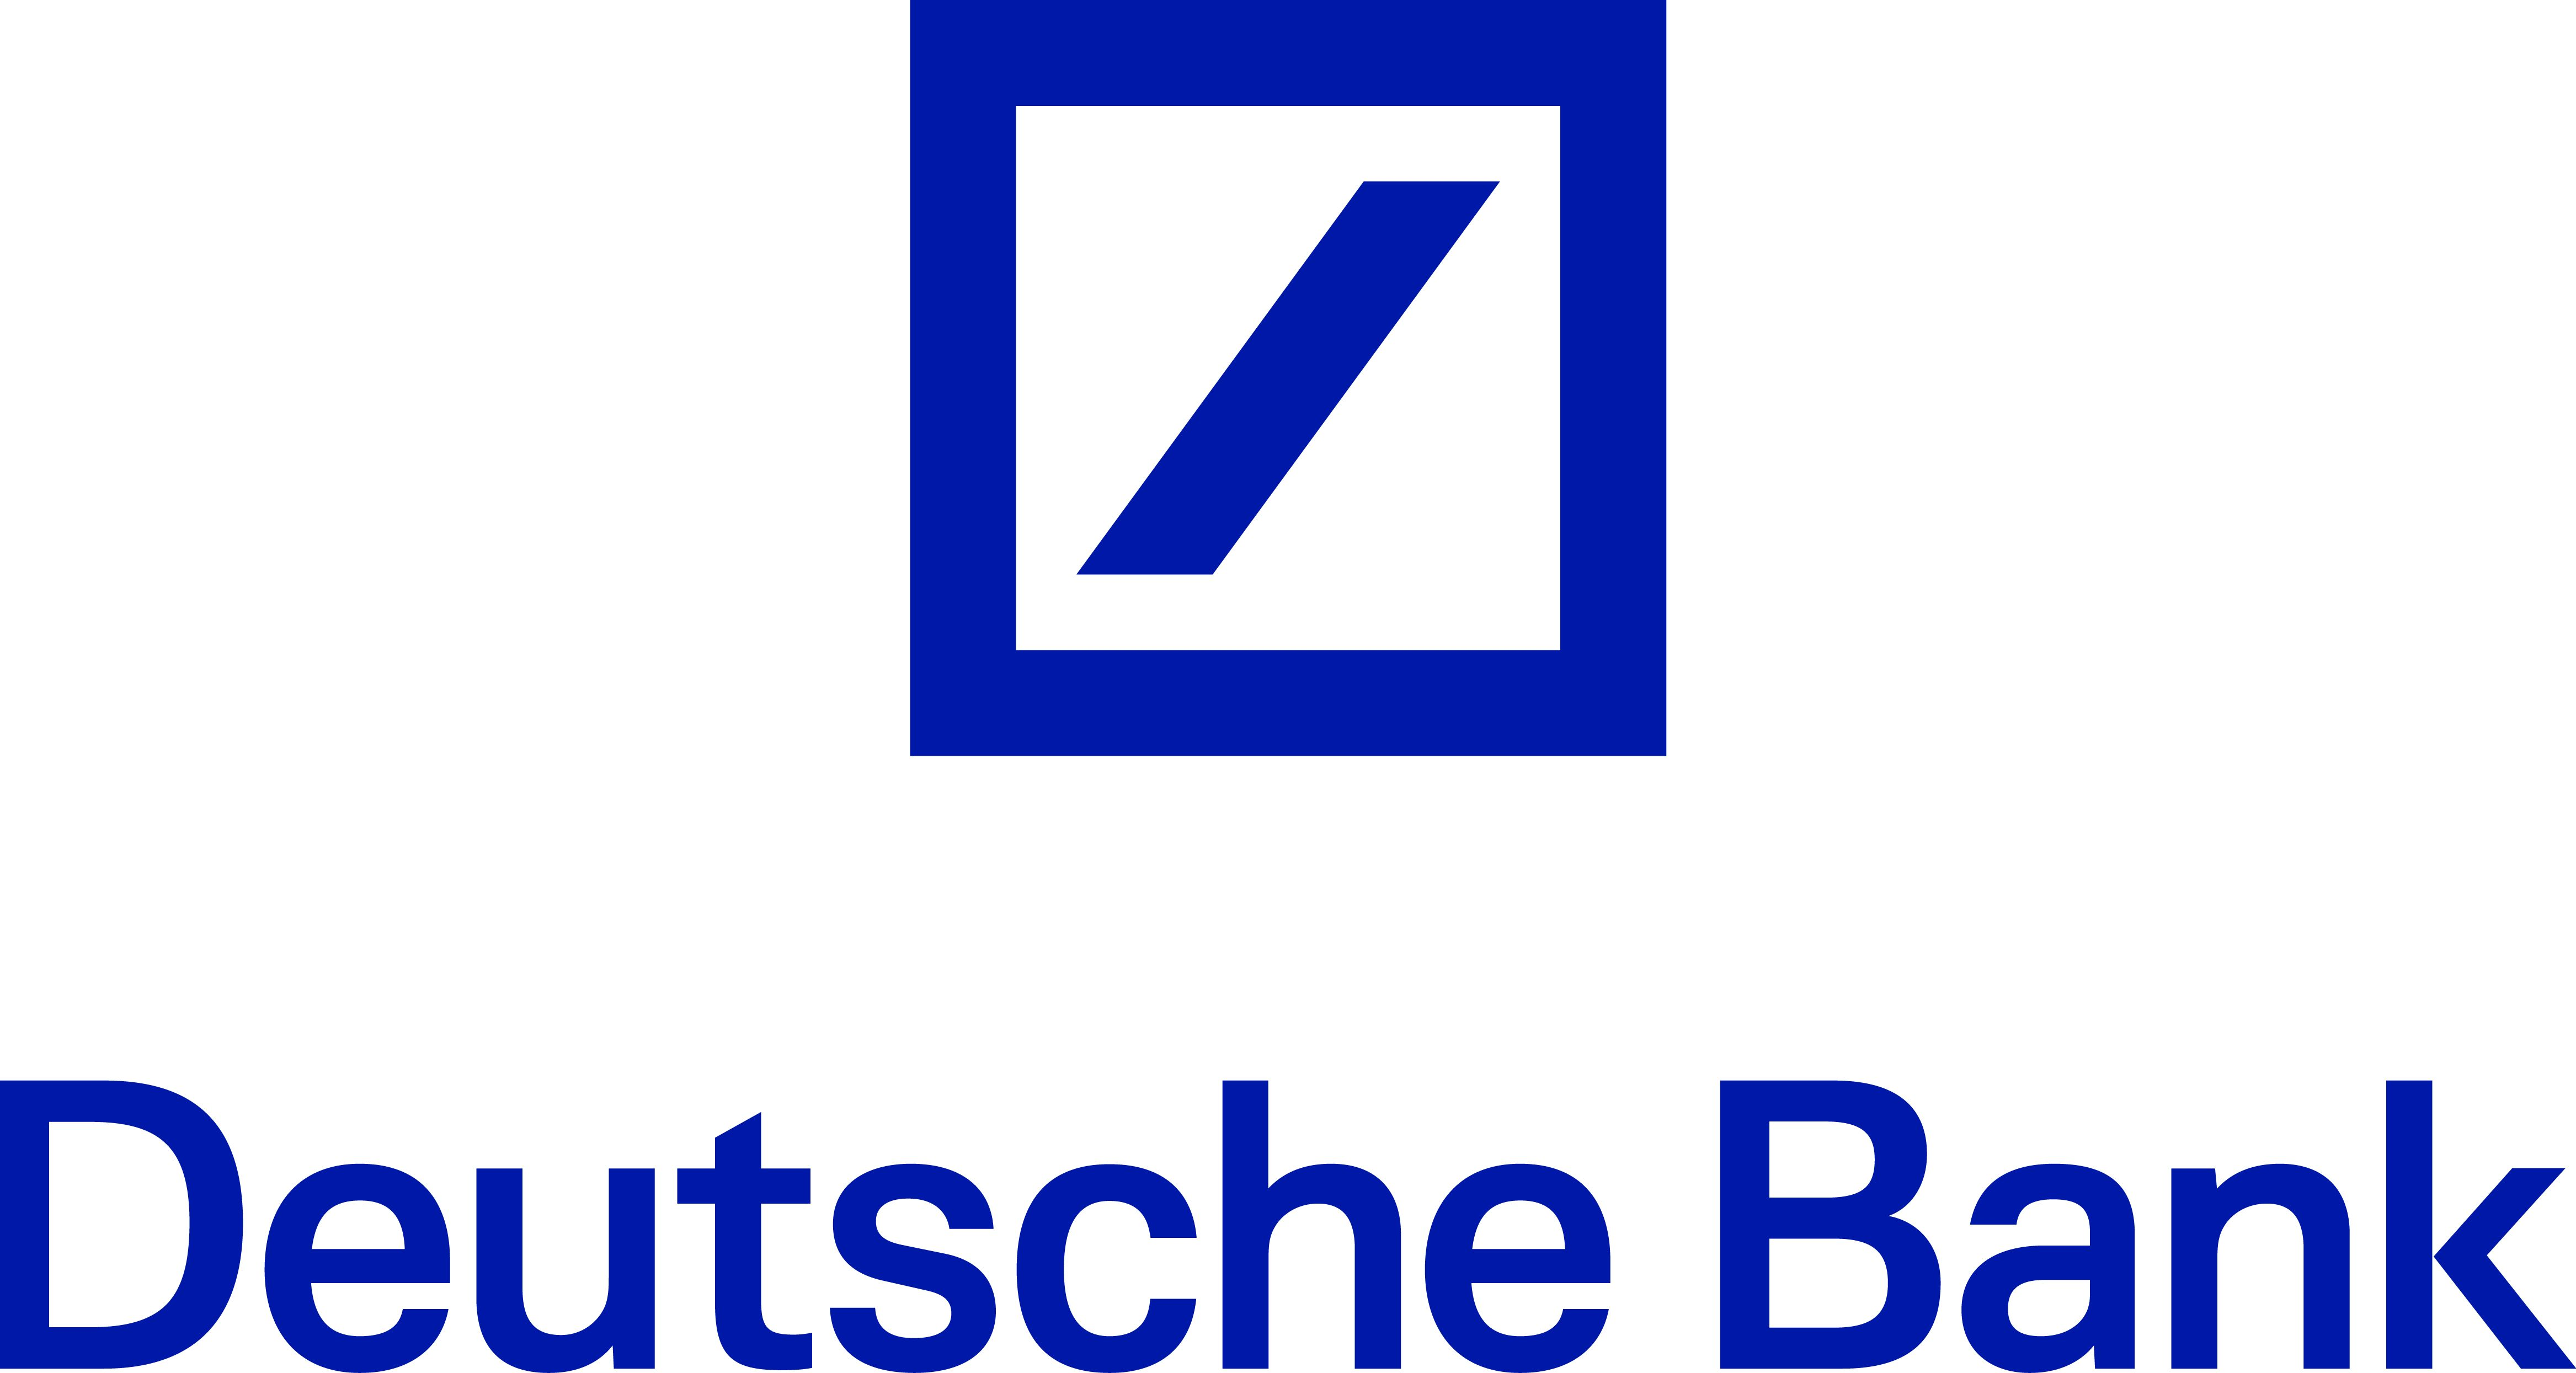 Deutsche Bank renews partnership with SimCorp to deliver fund services across Asia Pacific